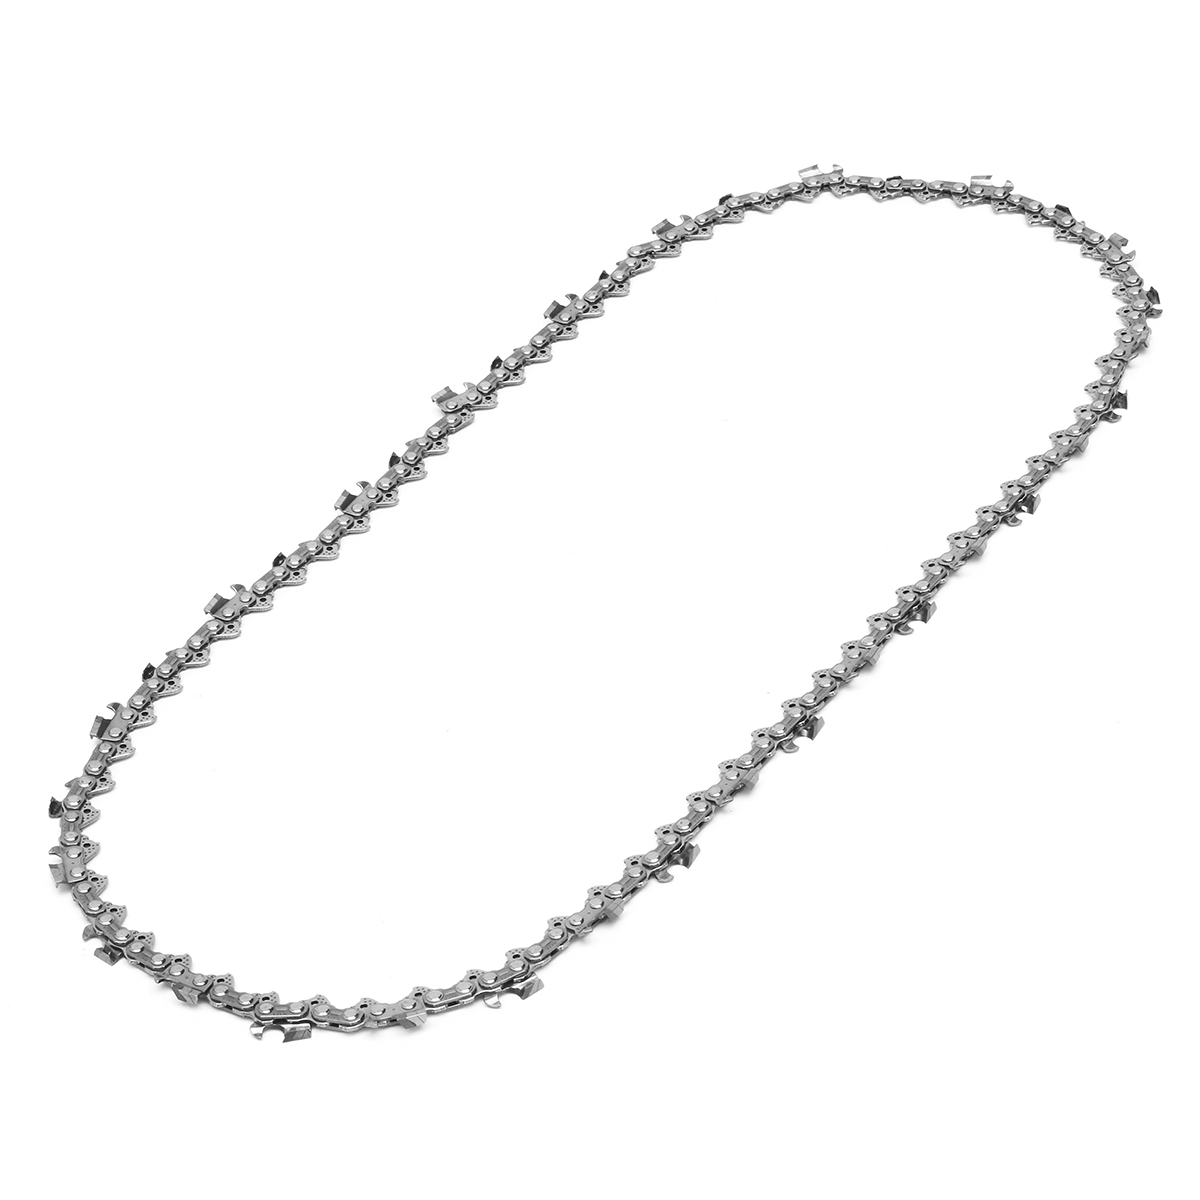 Carbide Tipped Saw Chain 72 Drive Links Chain For 20 Inch